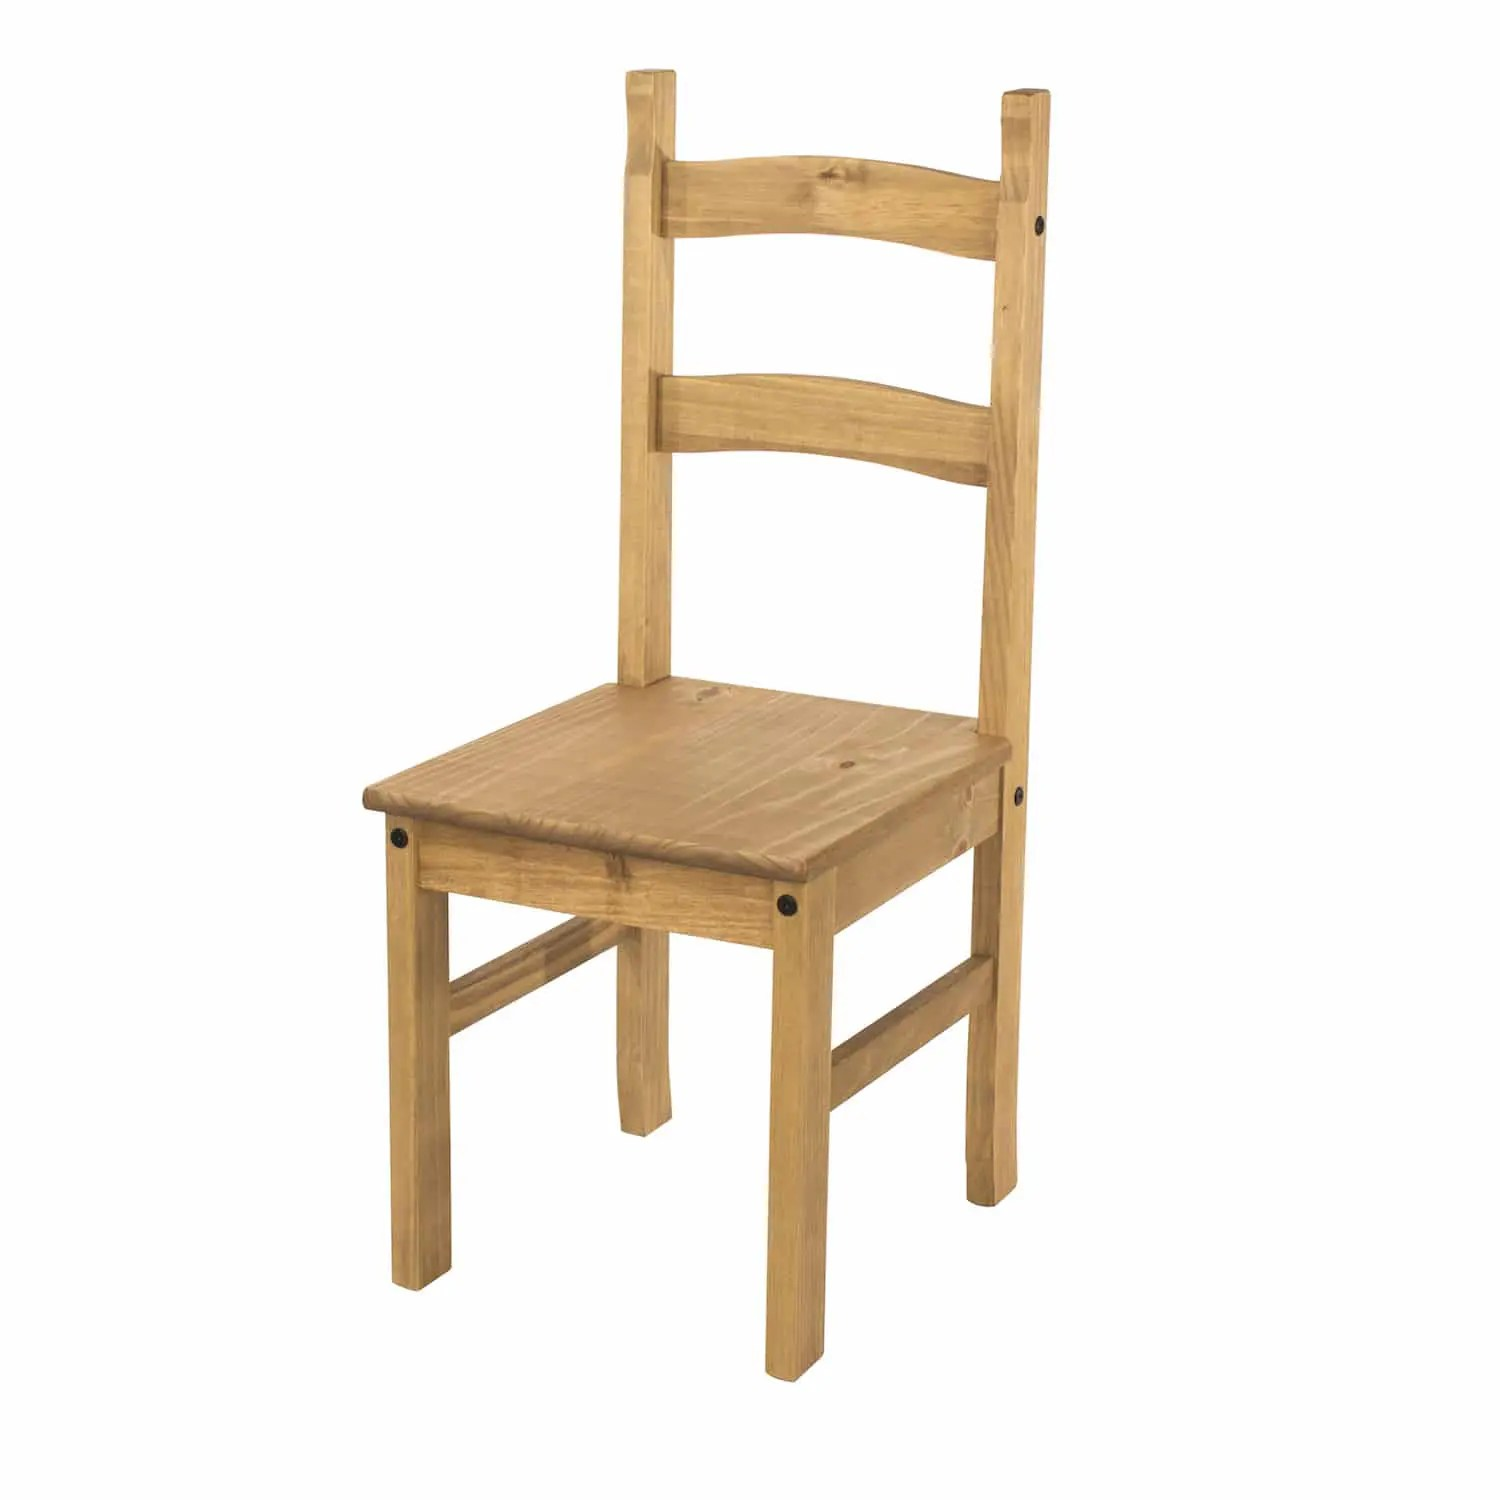 cheap pine dining chairs folding chair beds canada corona best price house2ahome